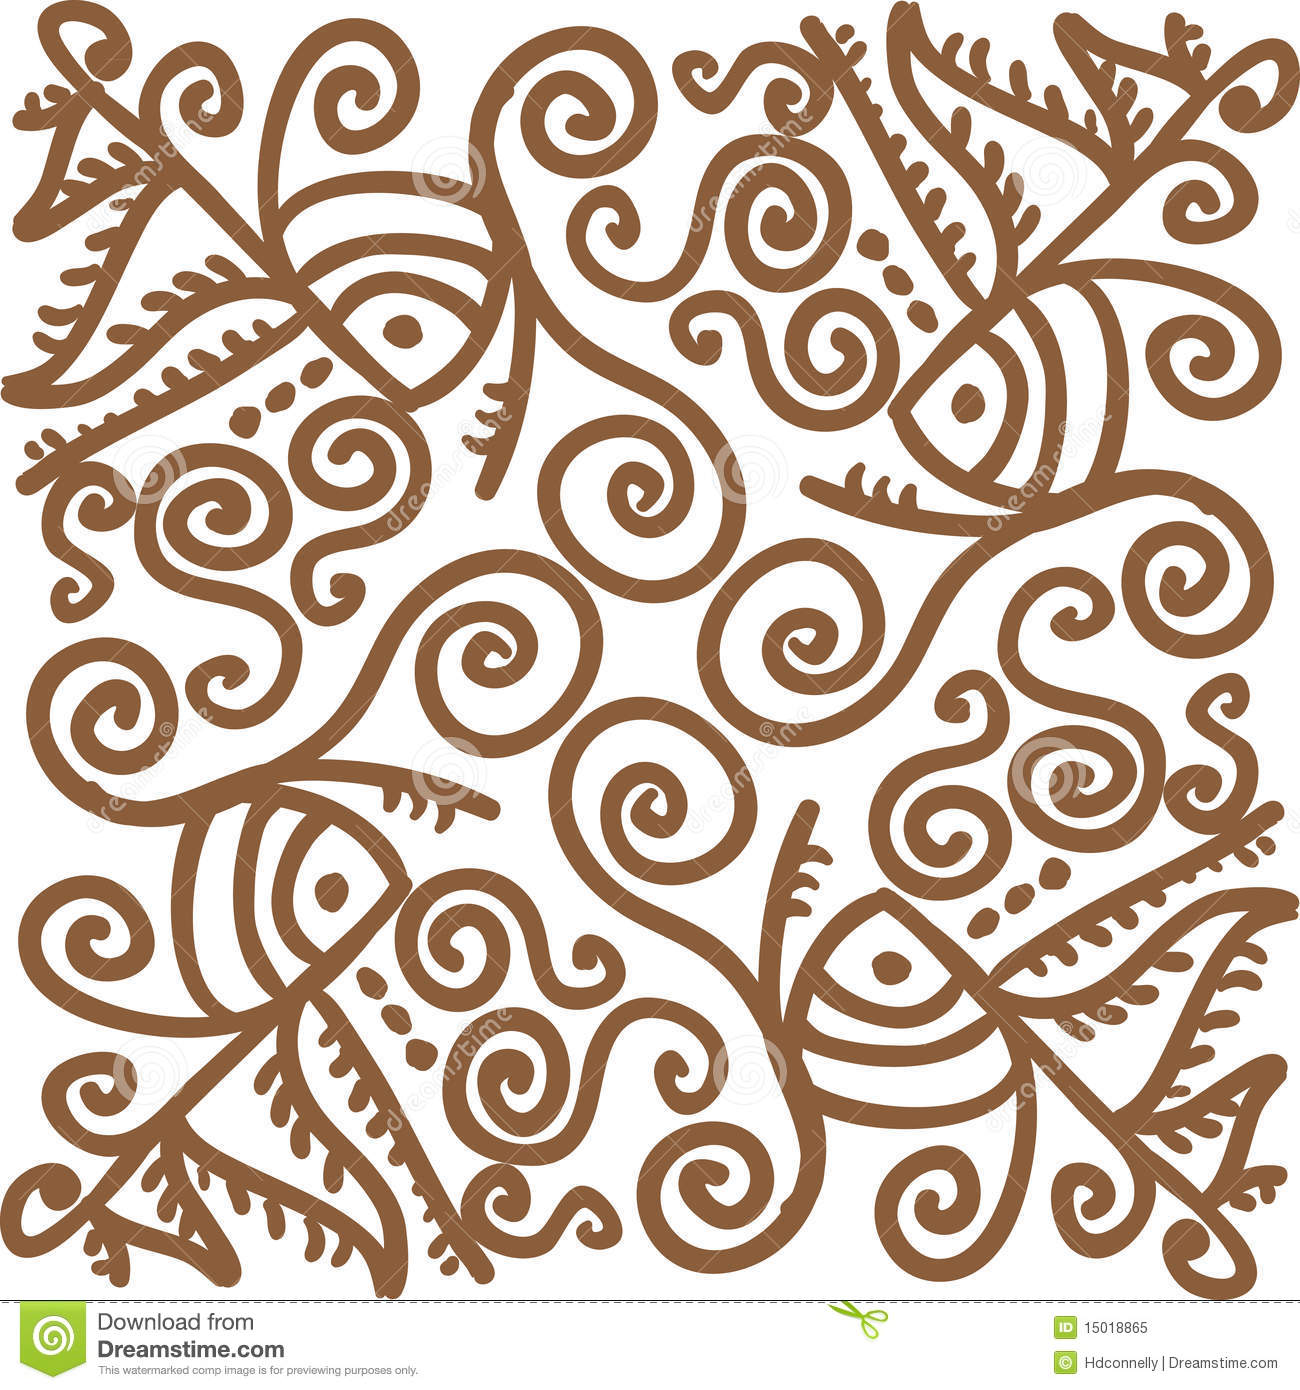 Intricate Design Royalty Free Stock Photo - Image: 15018865